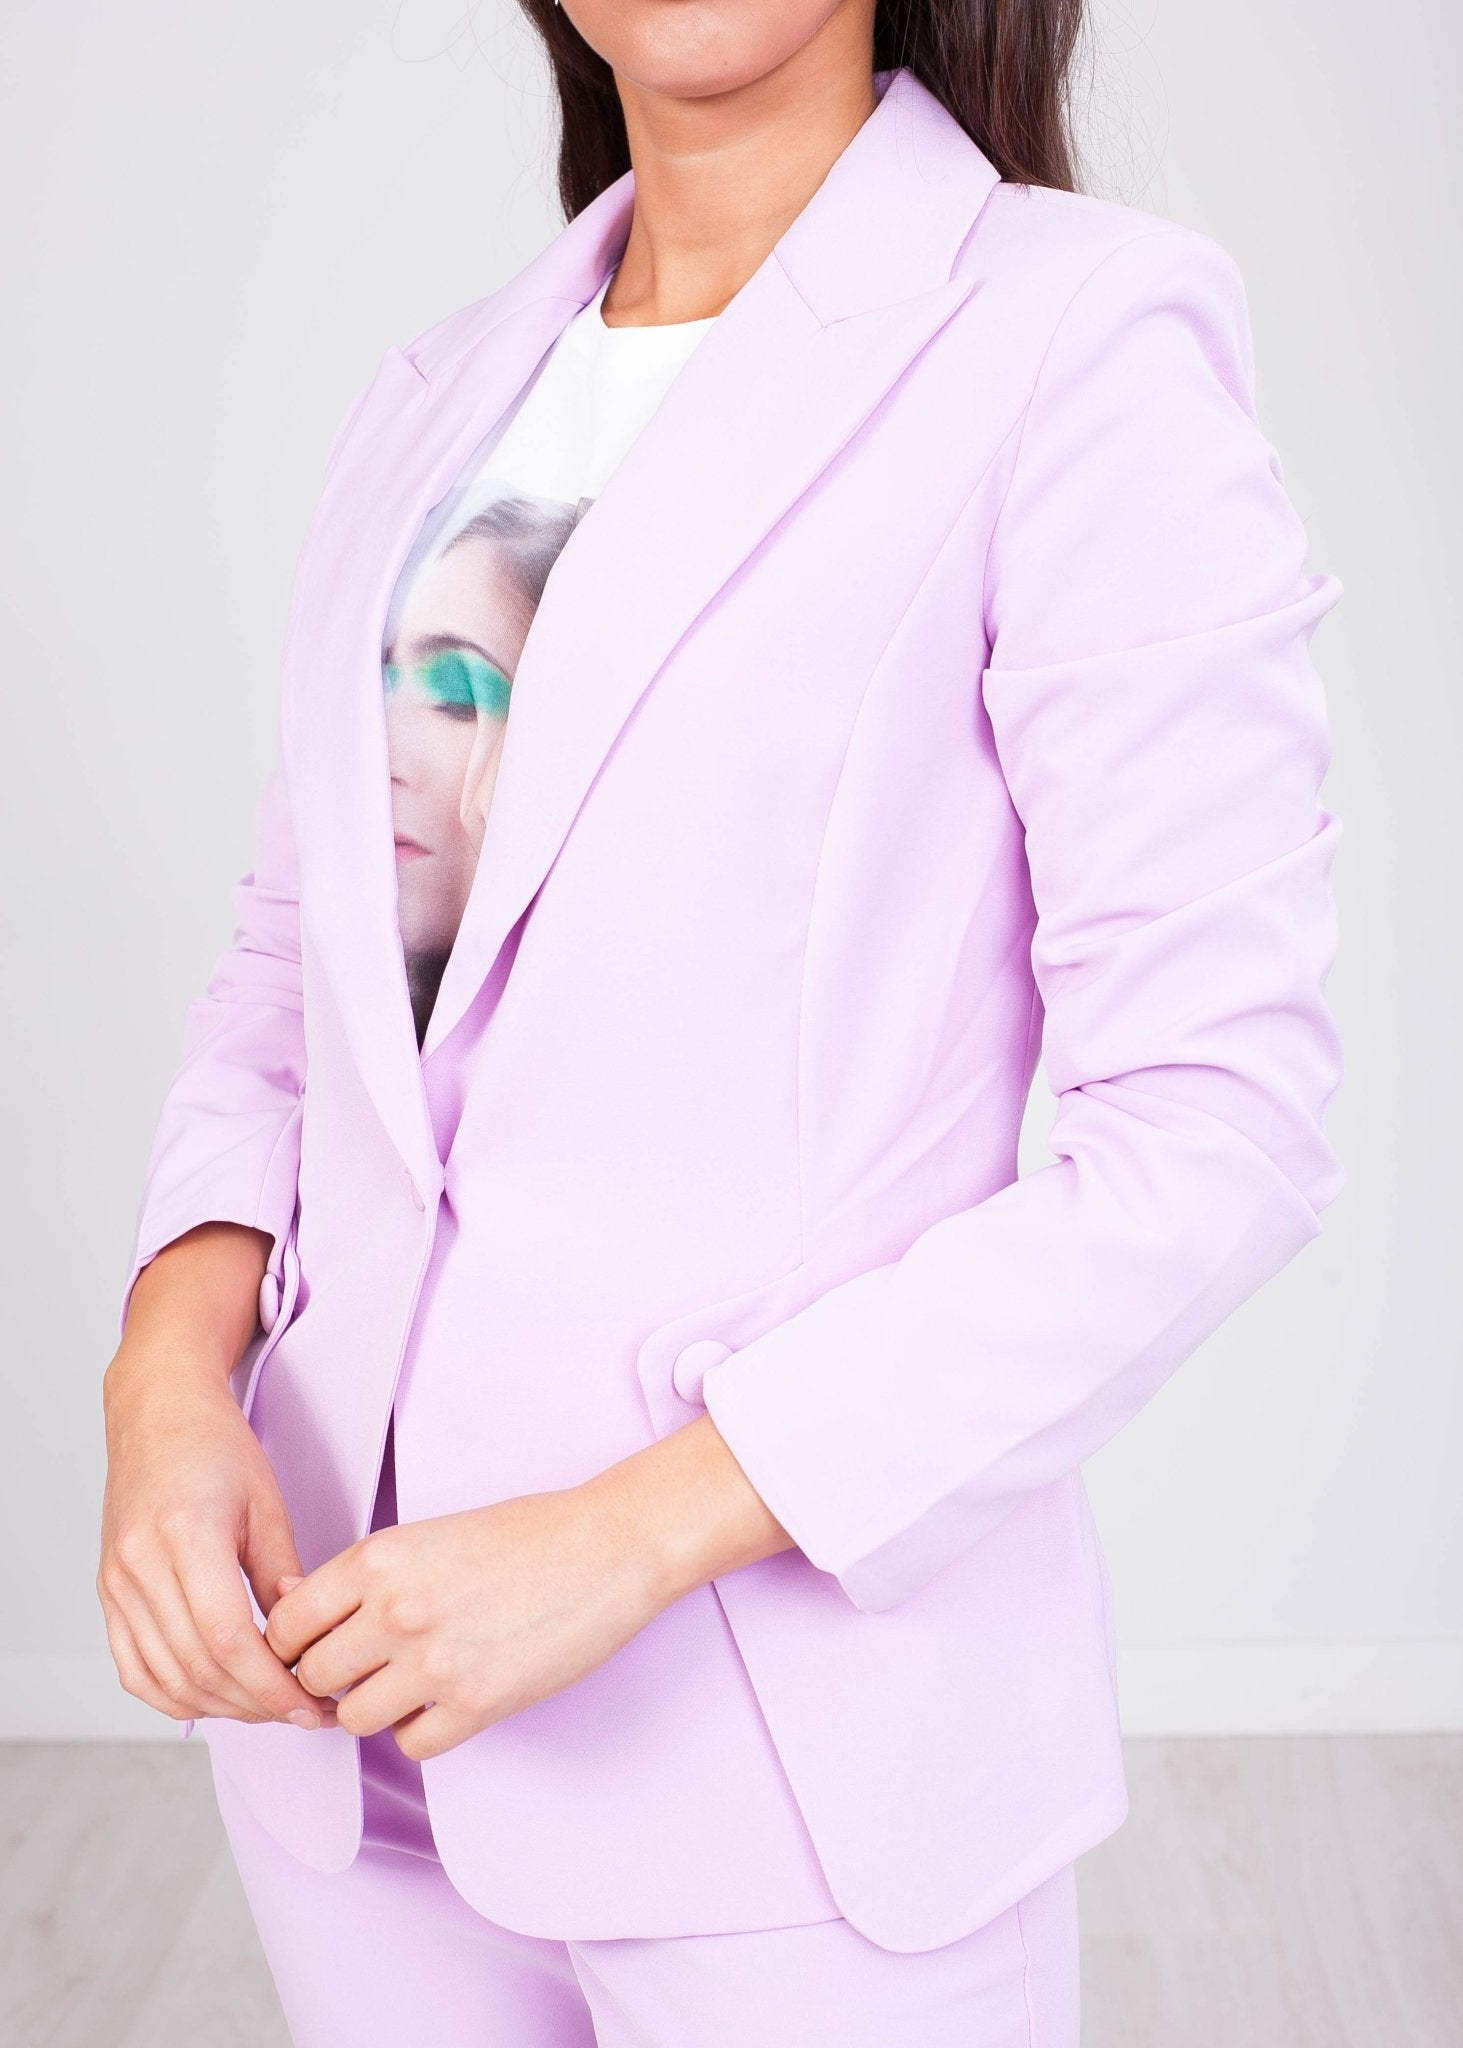 Arabella Lilac Blazer - The Walk in Wardrobe